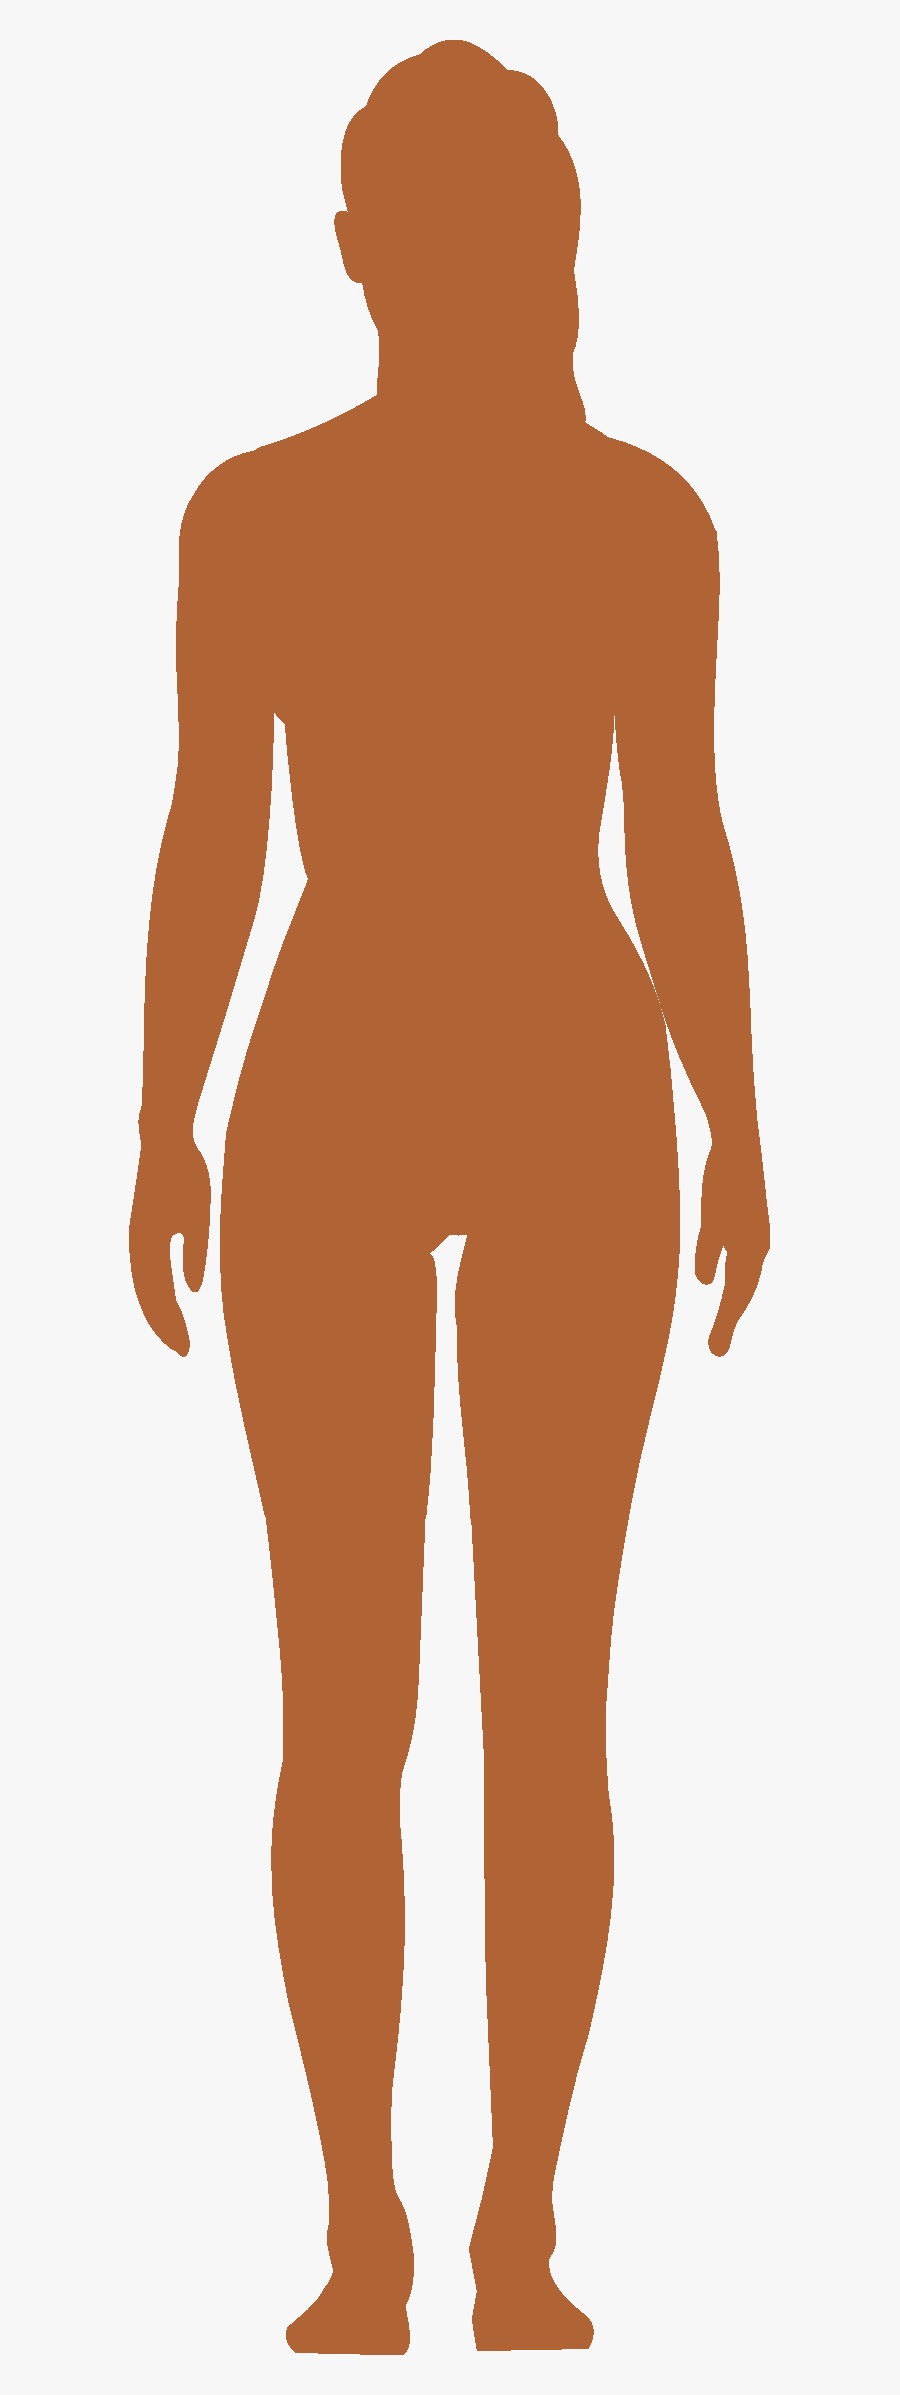 Leg,human Art - Female Human Body Png, Transparent Clipart